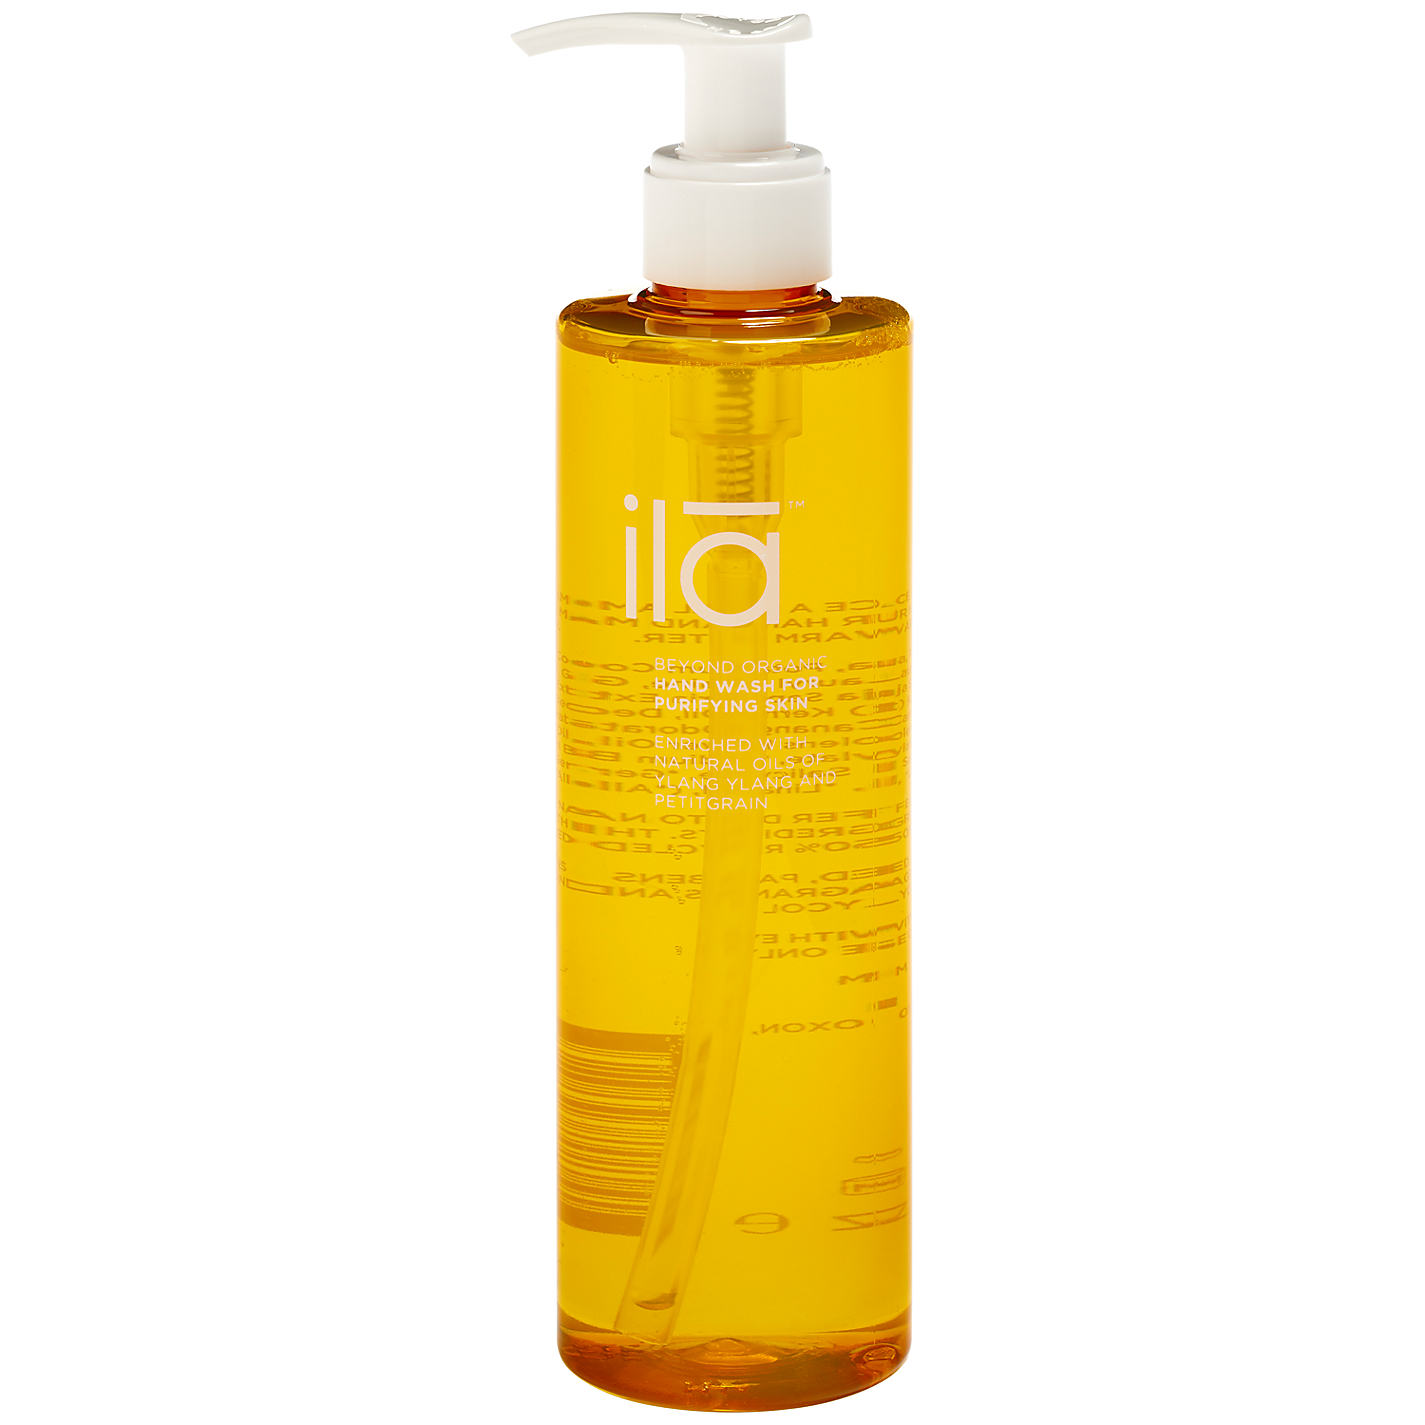 Ila Body Wash Buy Ila Spa Hand Wash For